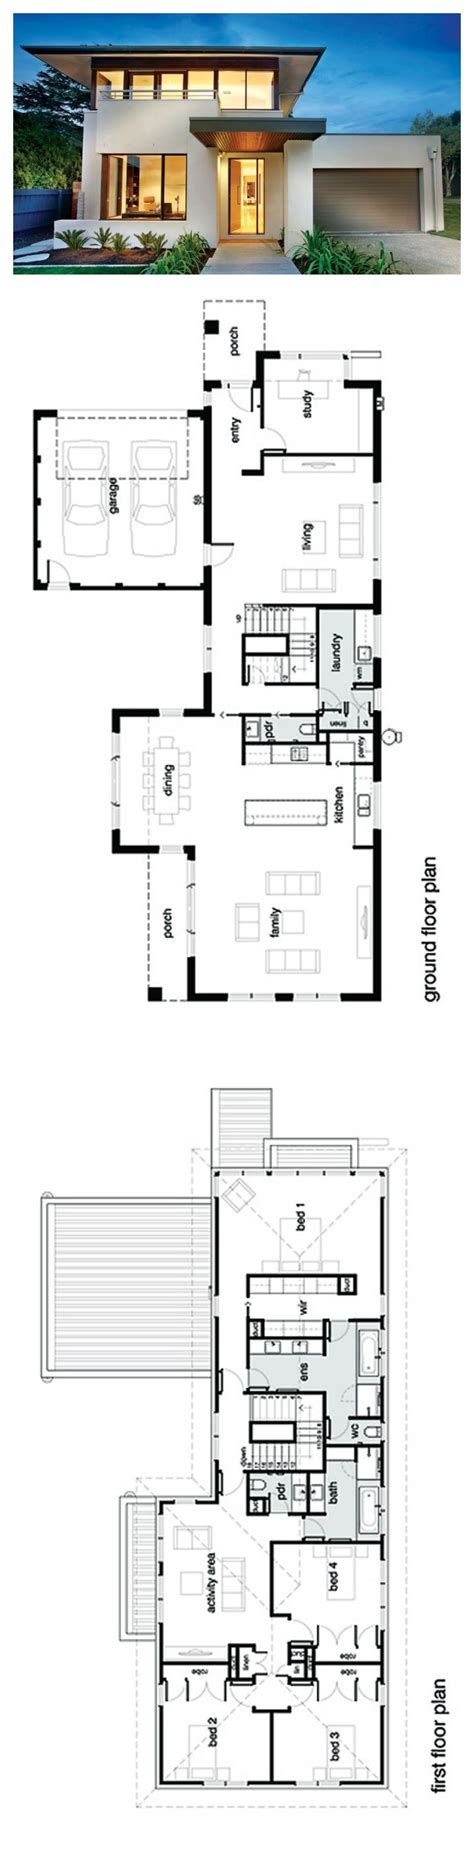 Contemporary 4 Bedroom House Plans by Best 25 Modern House Plans Ideas On